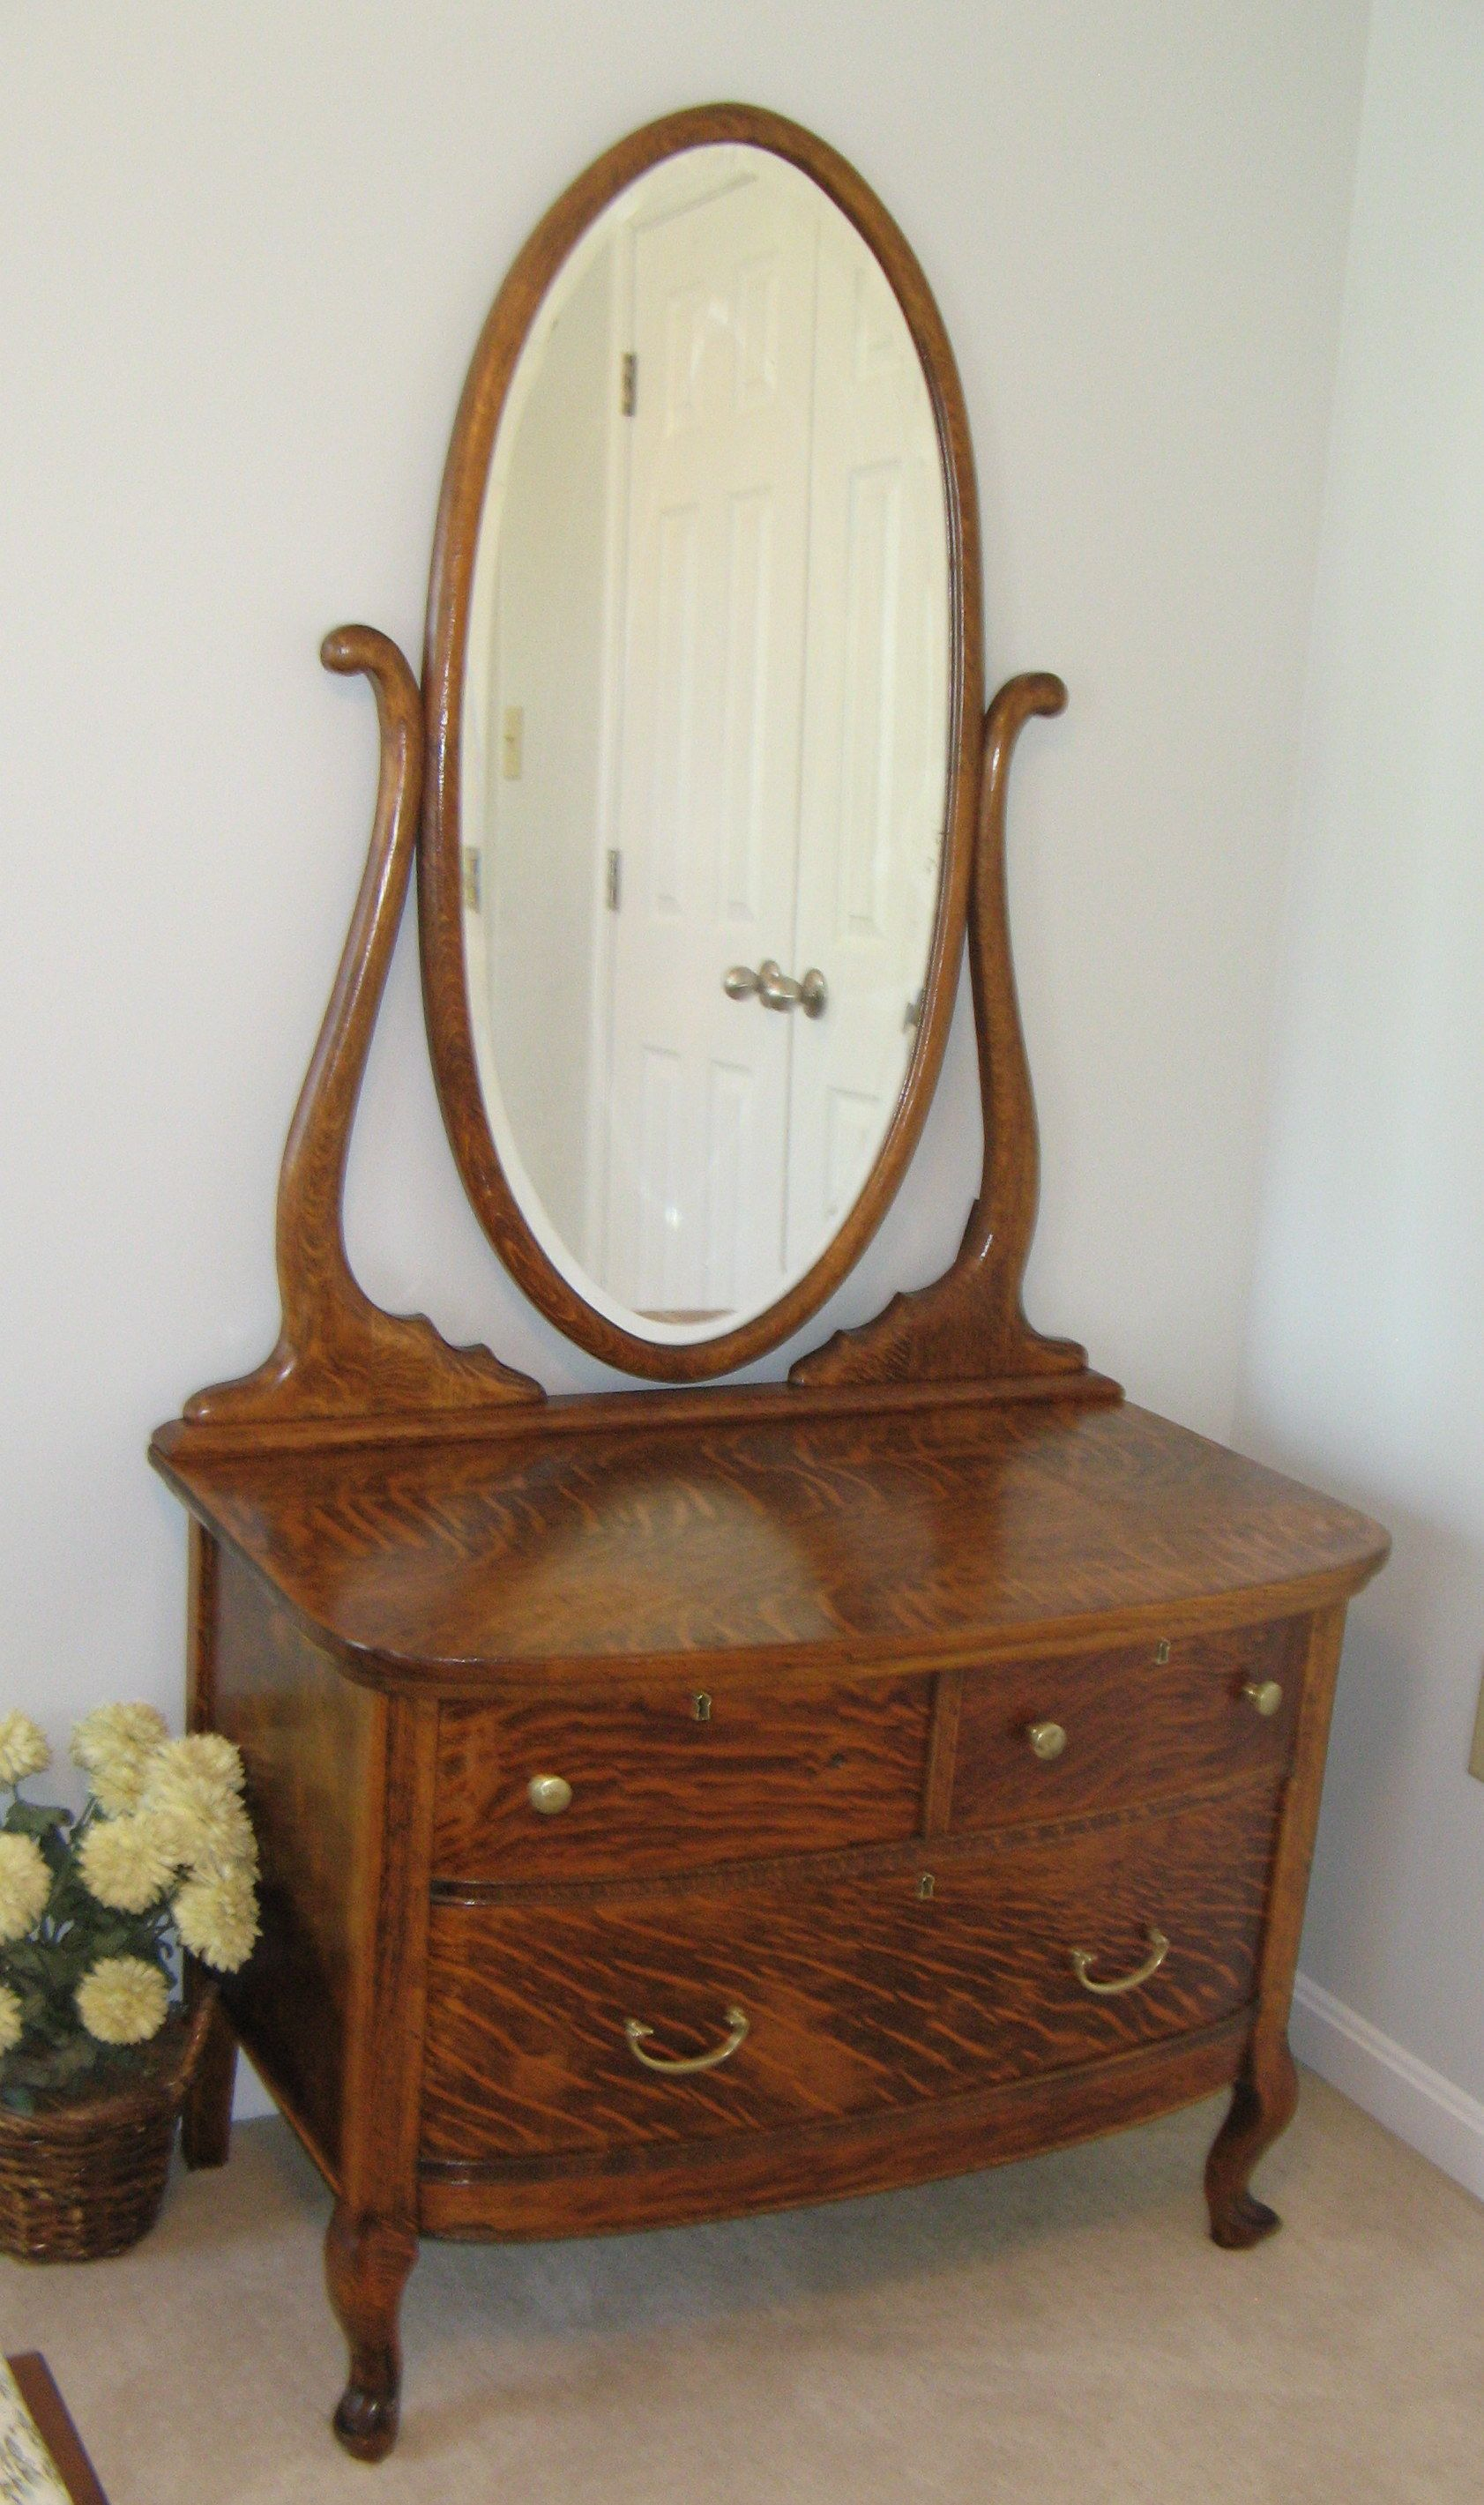 Early 1900s 3 Drawer Oak Dresser With Original Glass Mirror